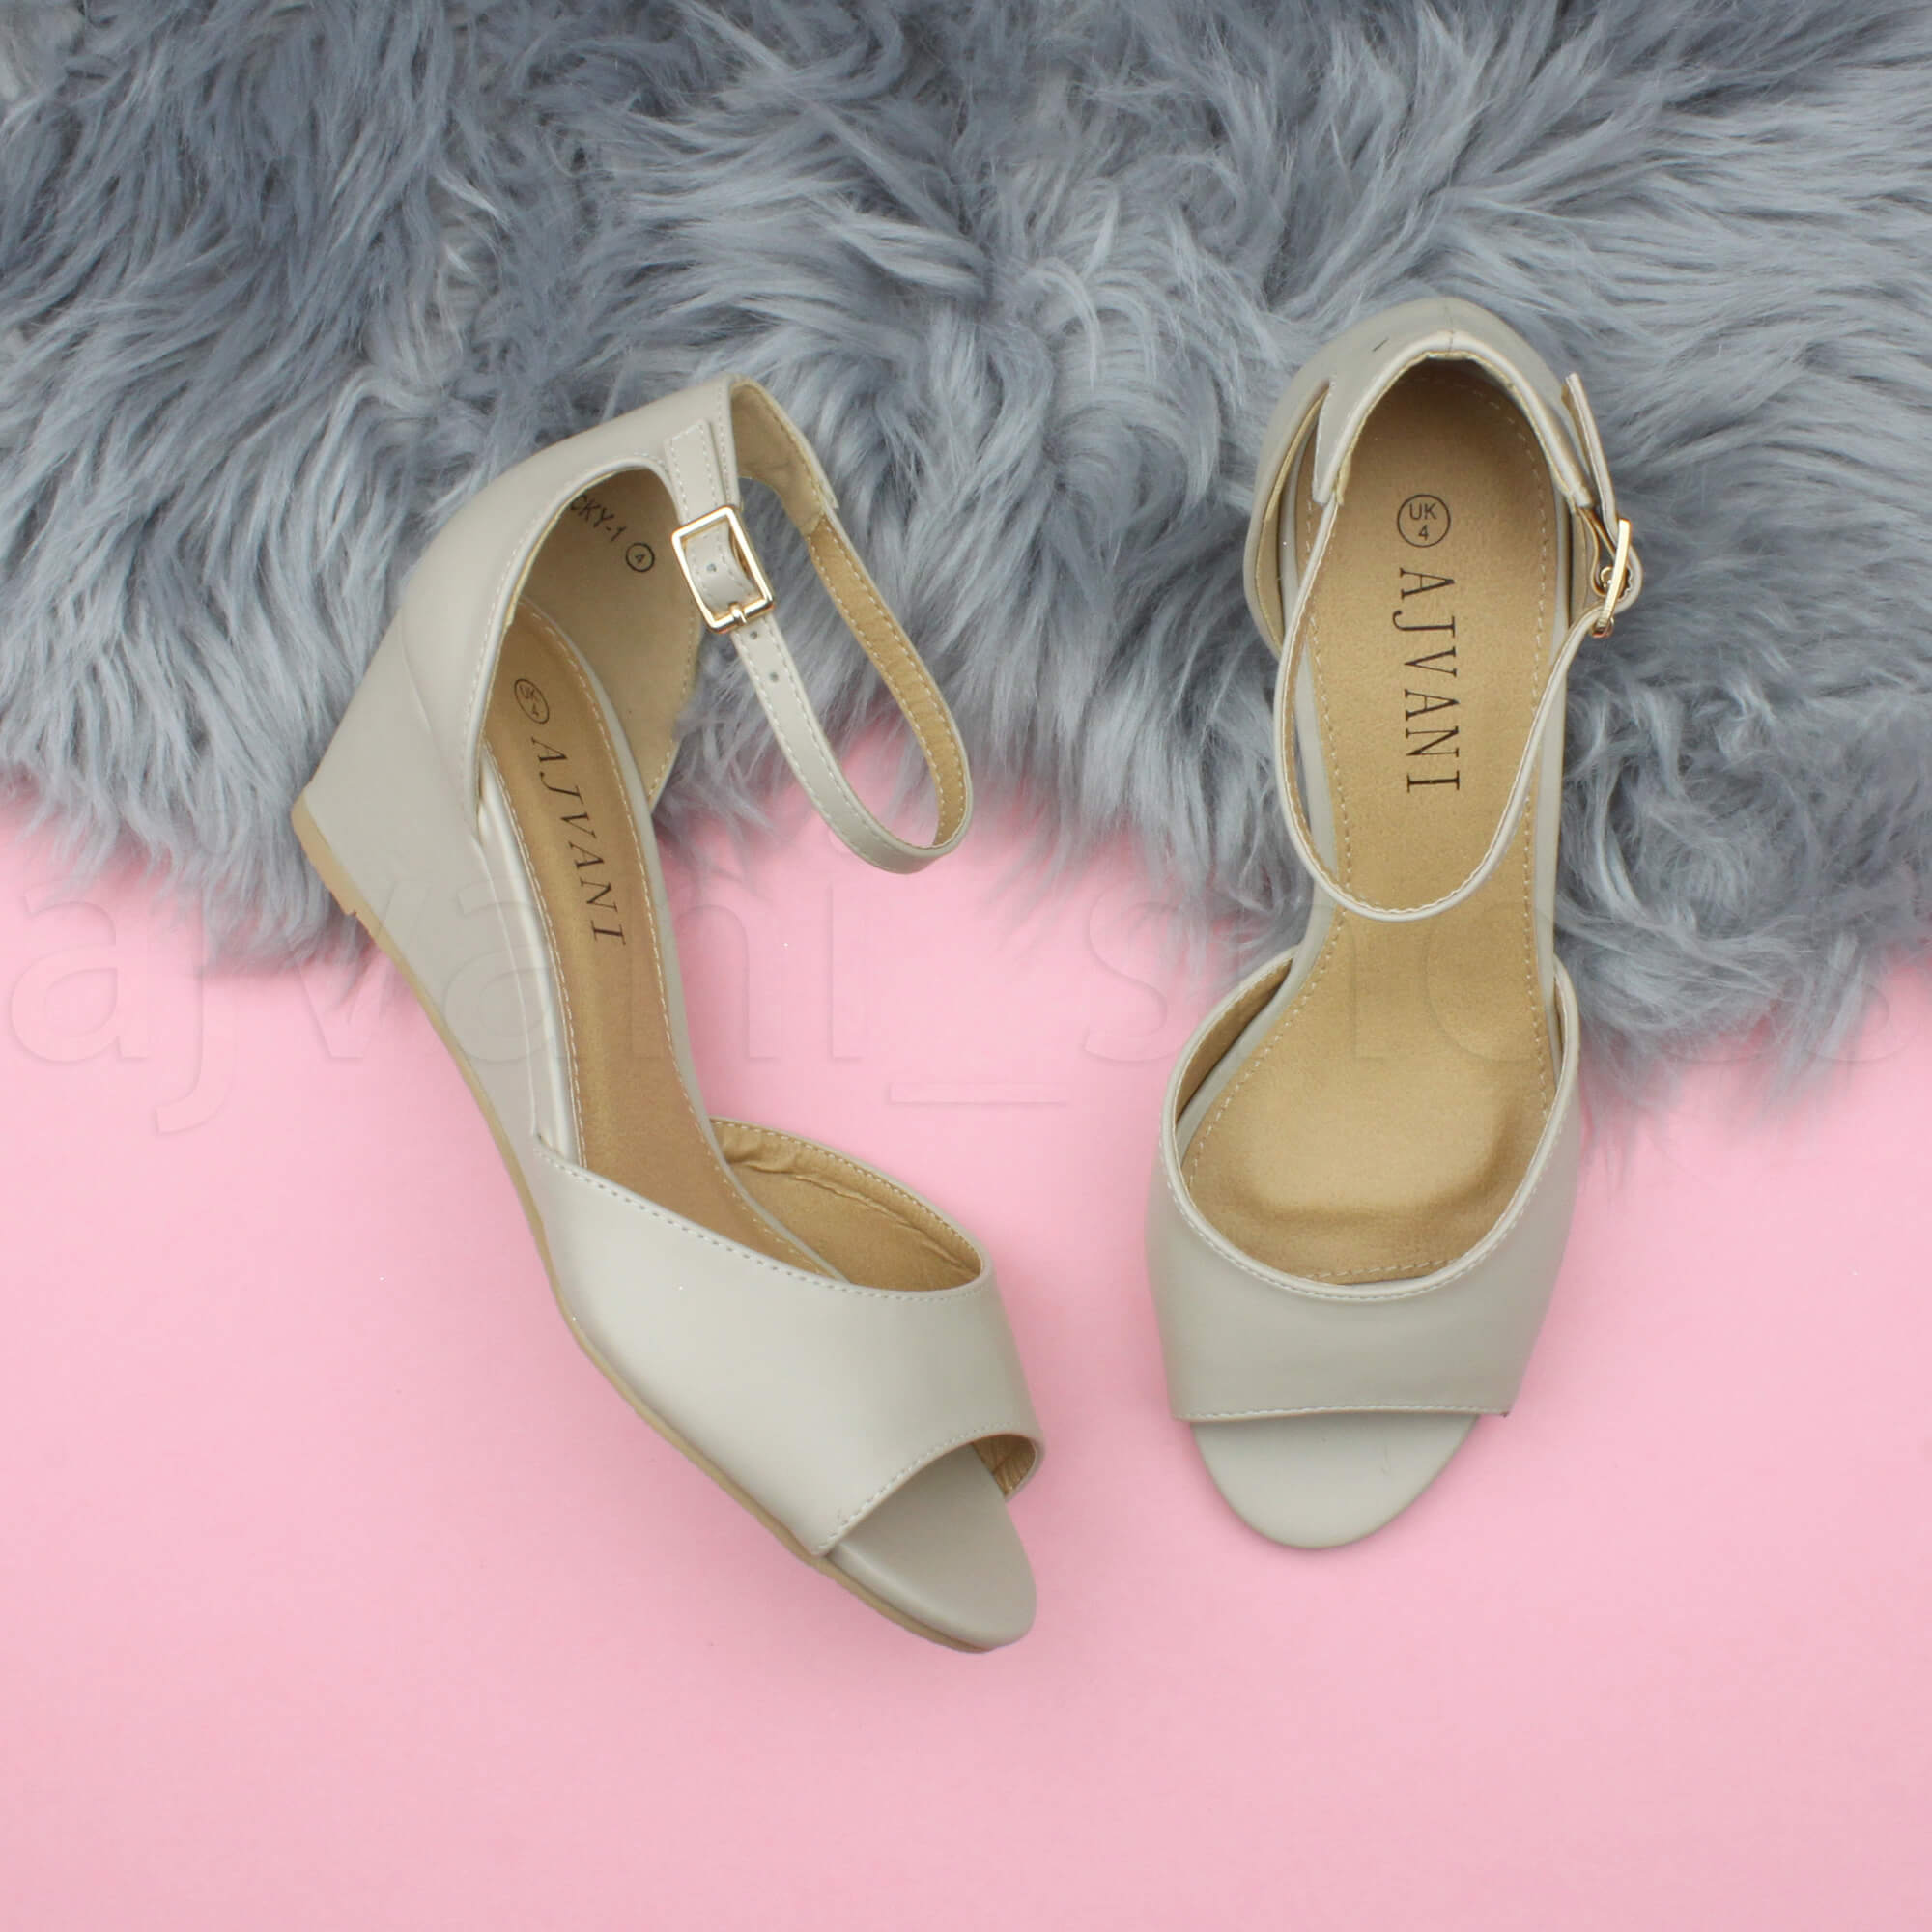 WOMENS-LADIES-LOW-MID-WEDGE-HEEL-ANKLE-STRAP-SMART-CASUAL-EVENING-SANDALS-SIZE thumbnail 93